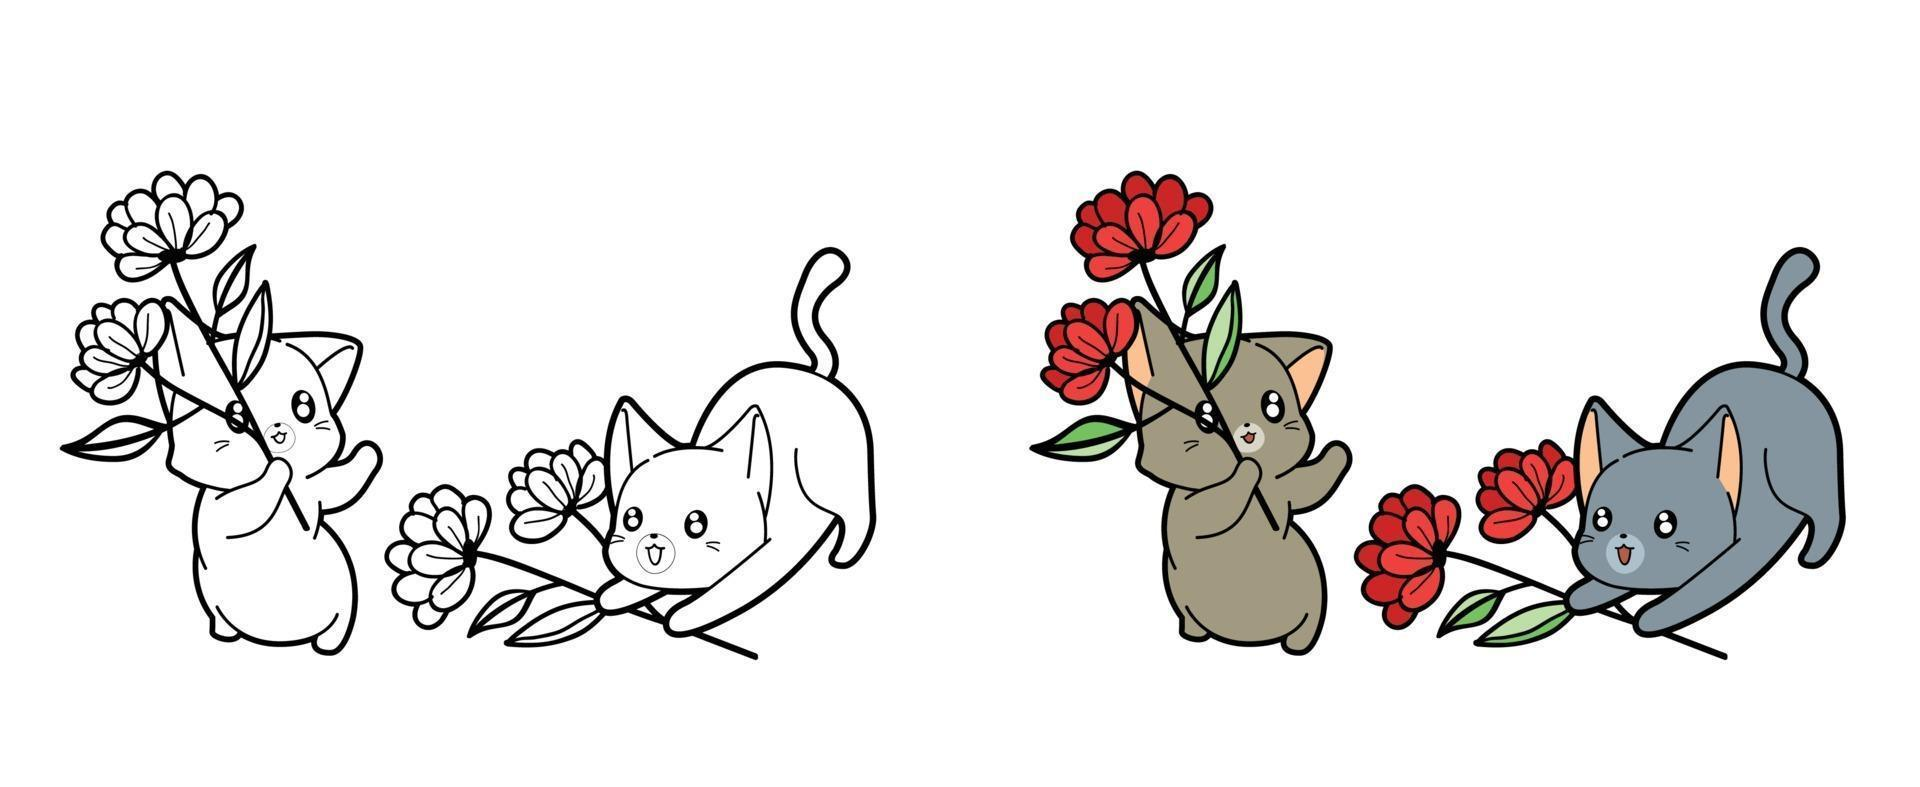 Cartoon cats and flowers coloring page for kids vector